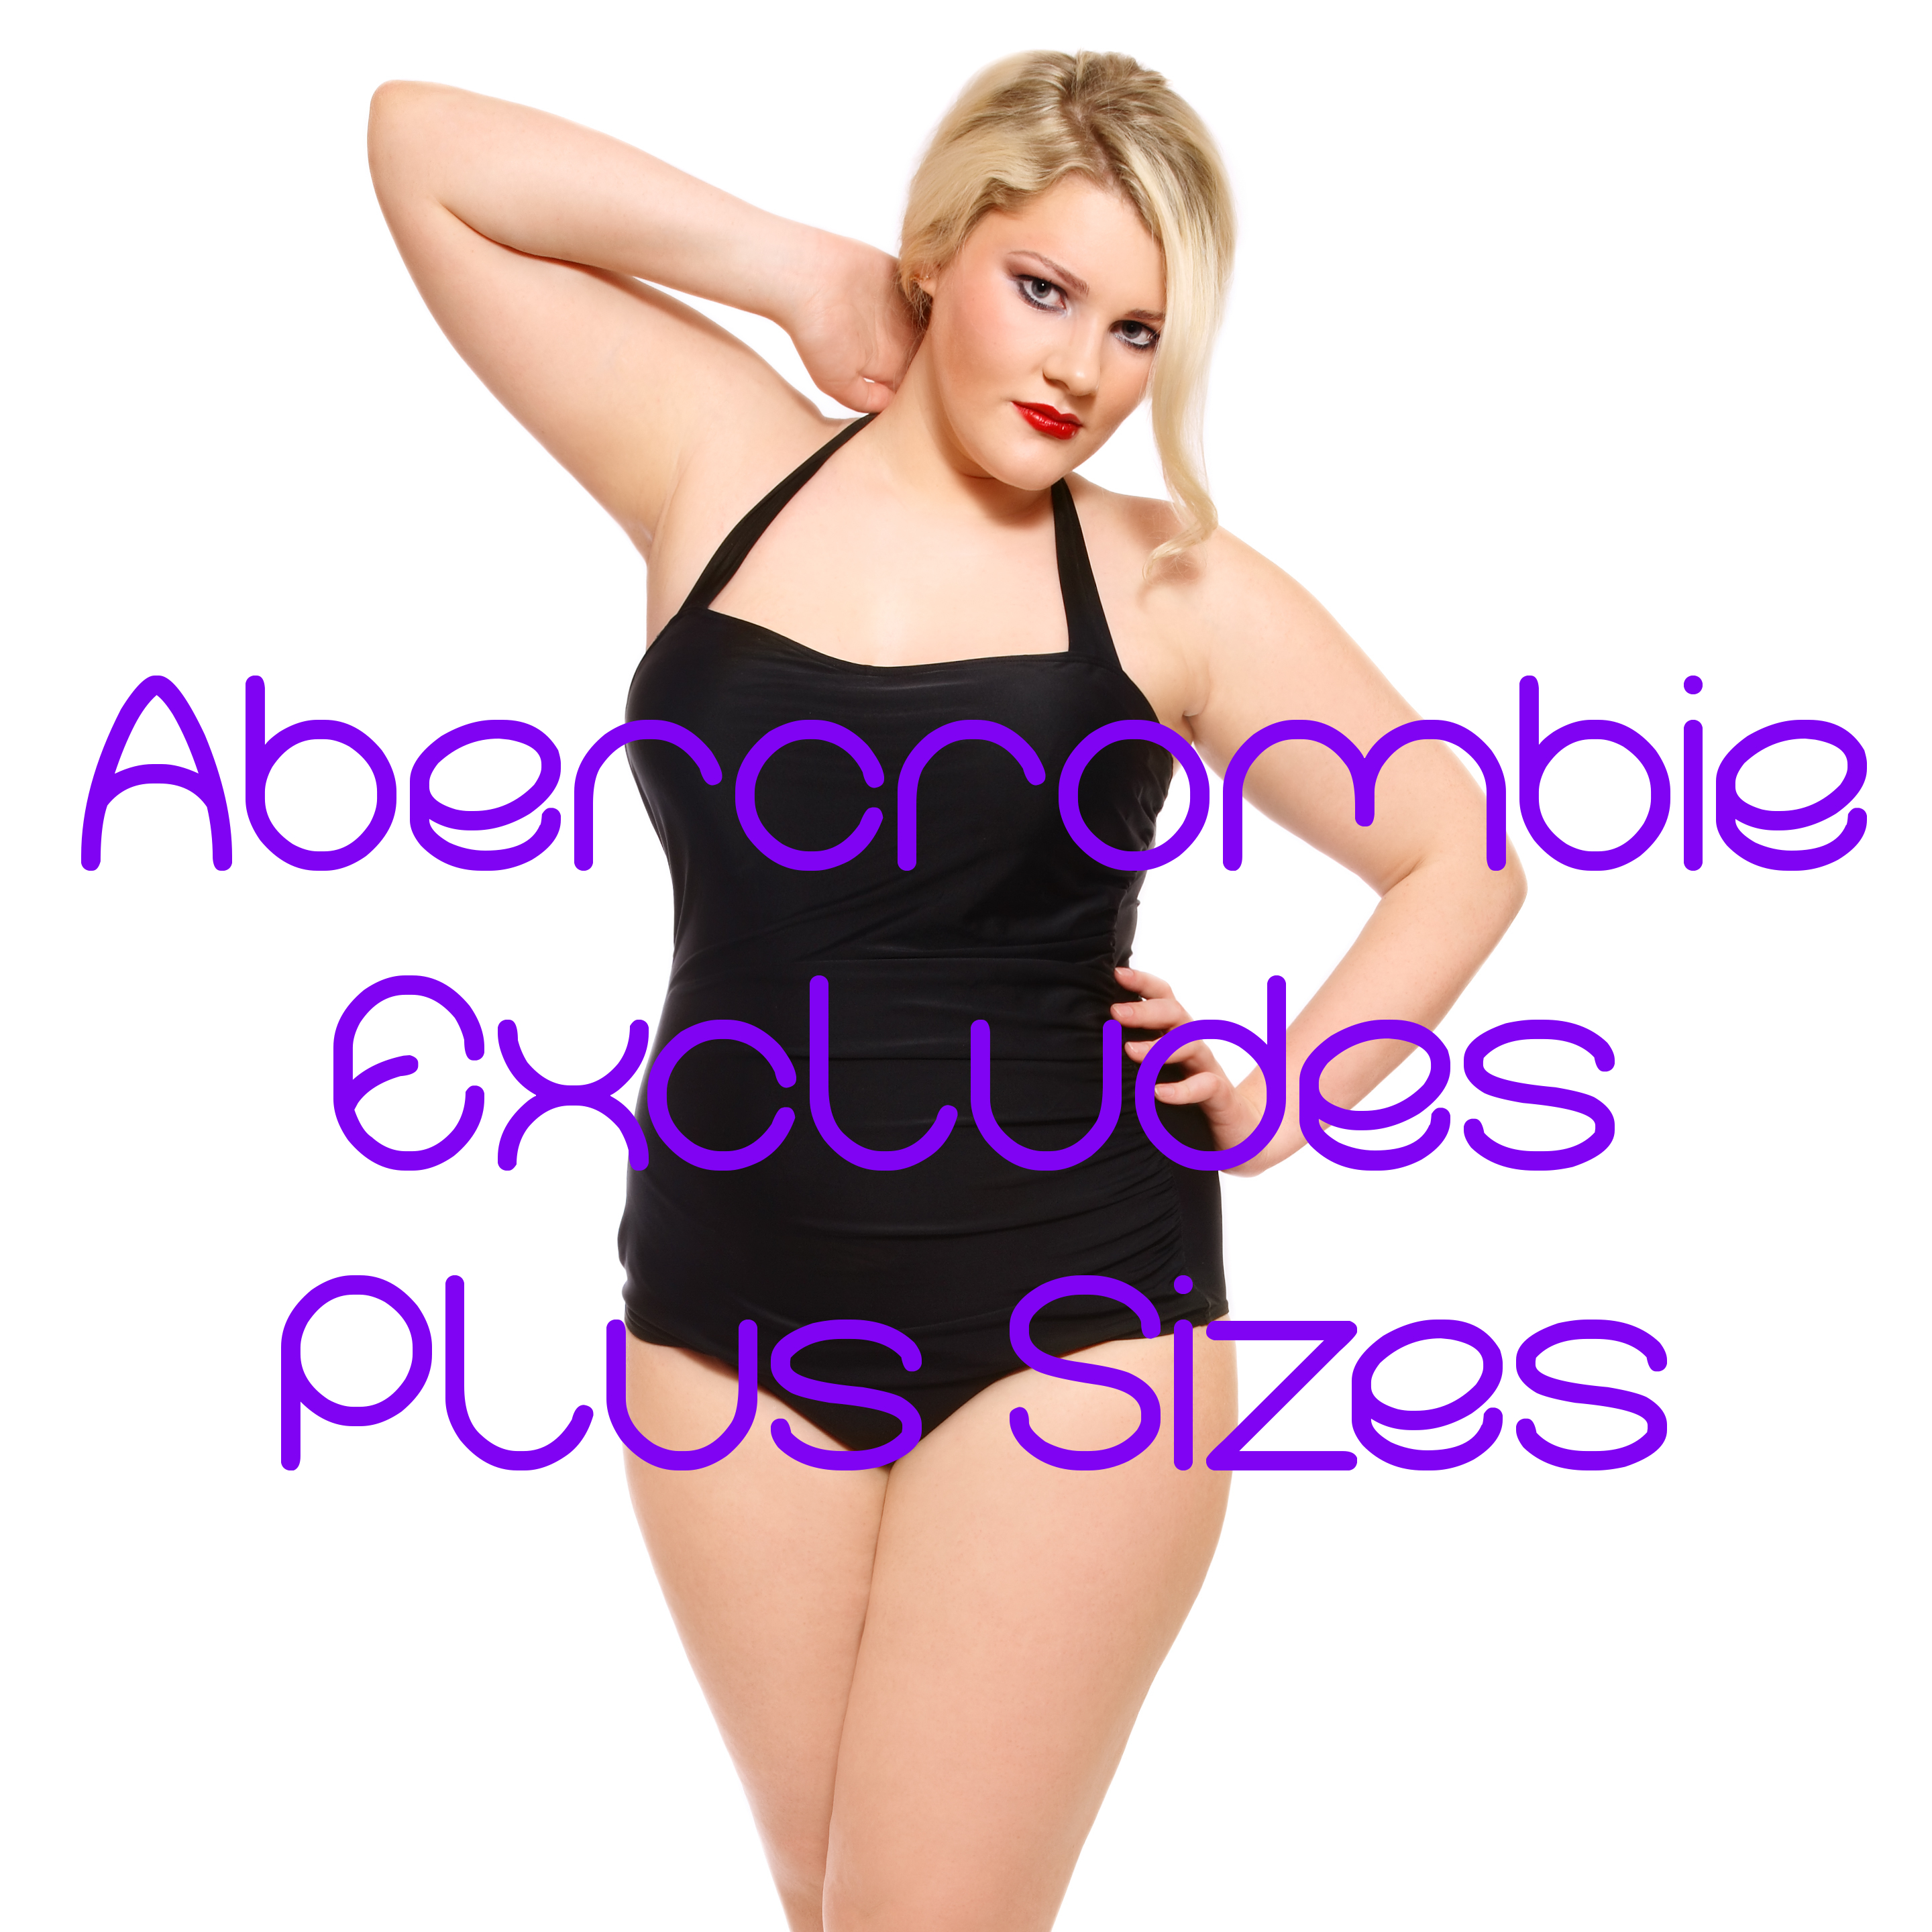 """Mike Jeffries Wants """"Vanilla"""" & """"Football"""" Body Types for Abercrombie"""